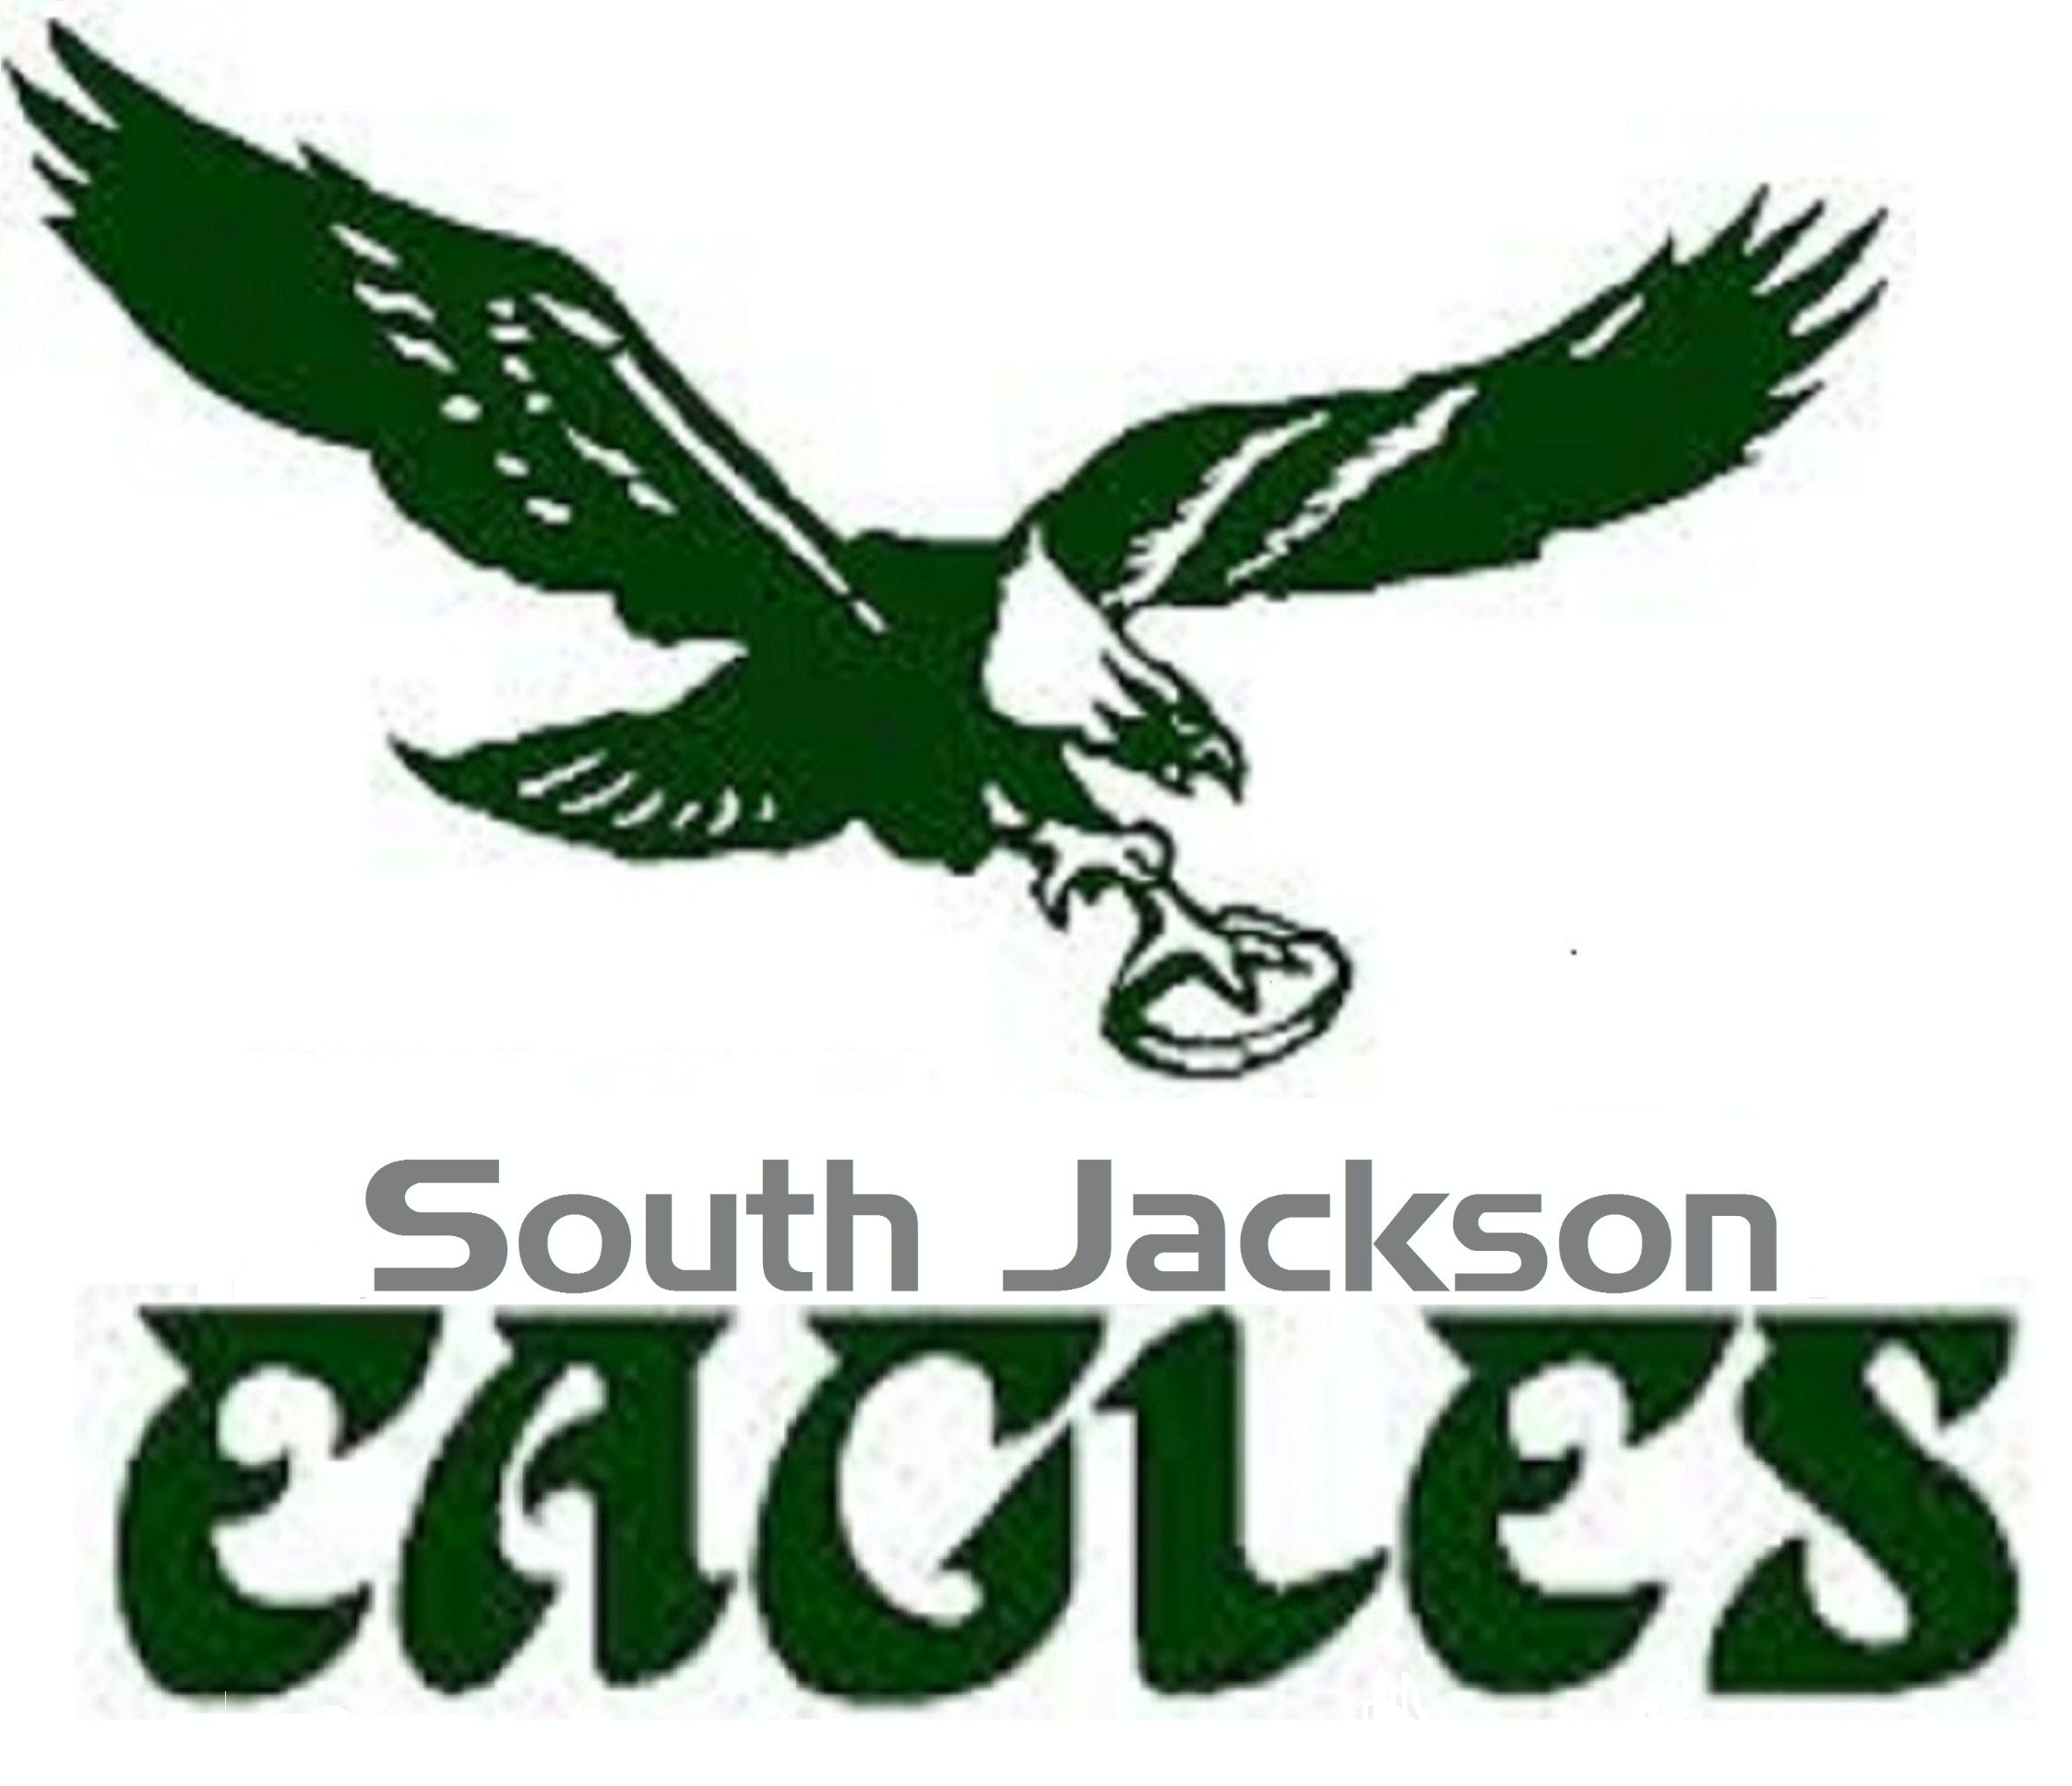 South Jackson Eagles Youth Football